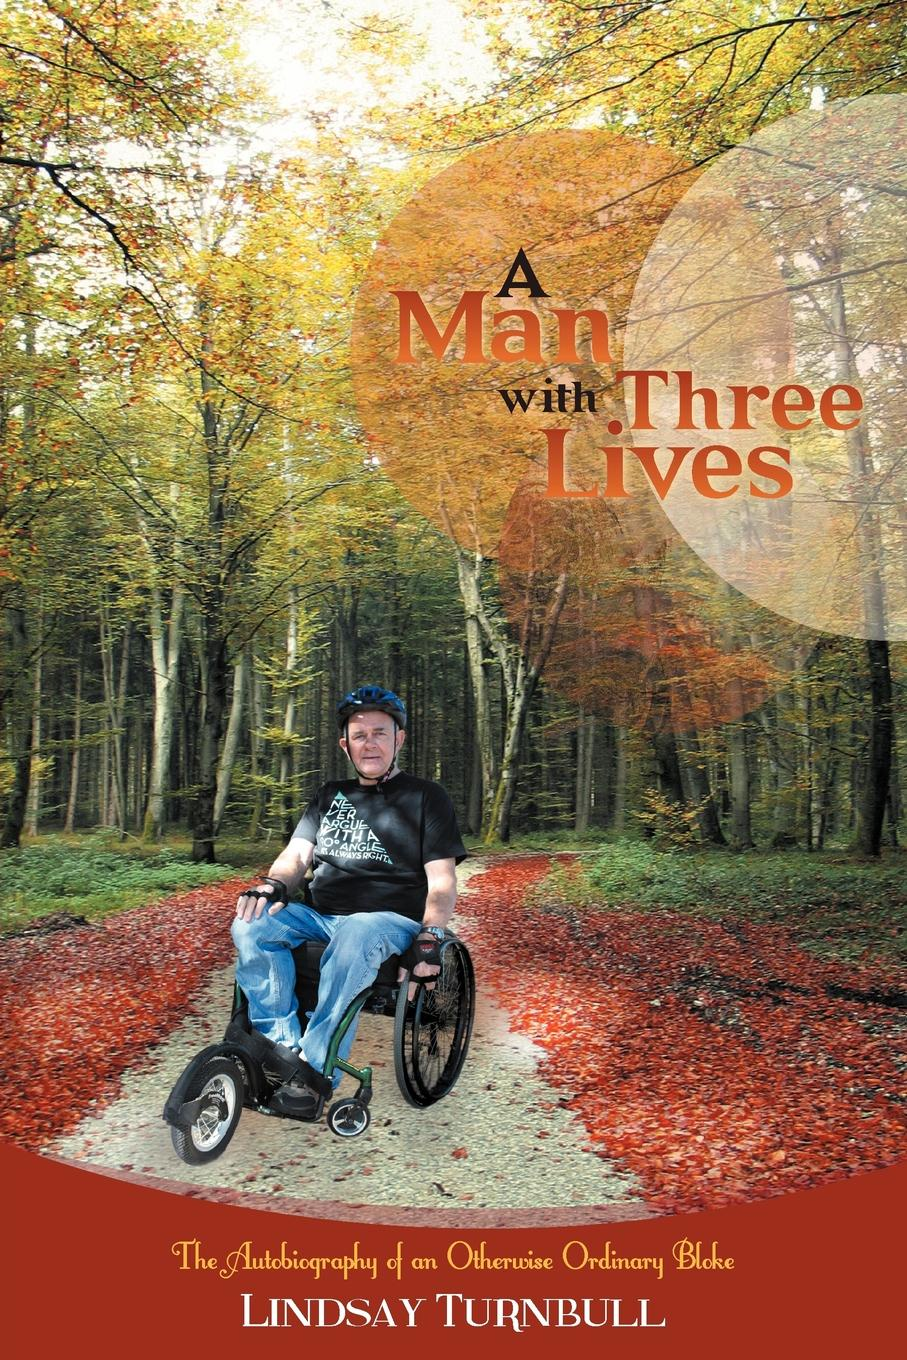 Lindsay Turnbull A Man with Three Lives. The Autobiography of an Otherwise Ordinary Bloke three man 4